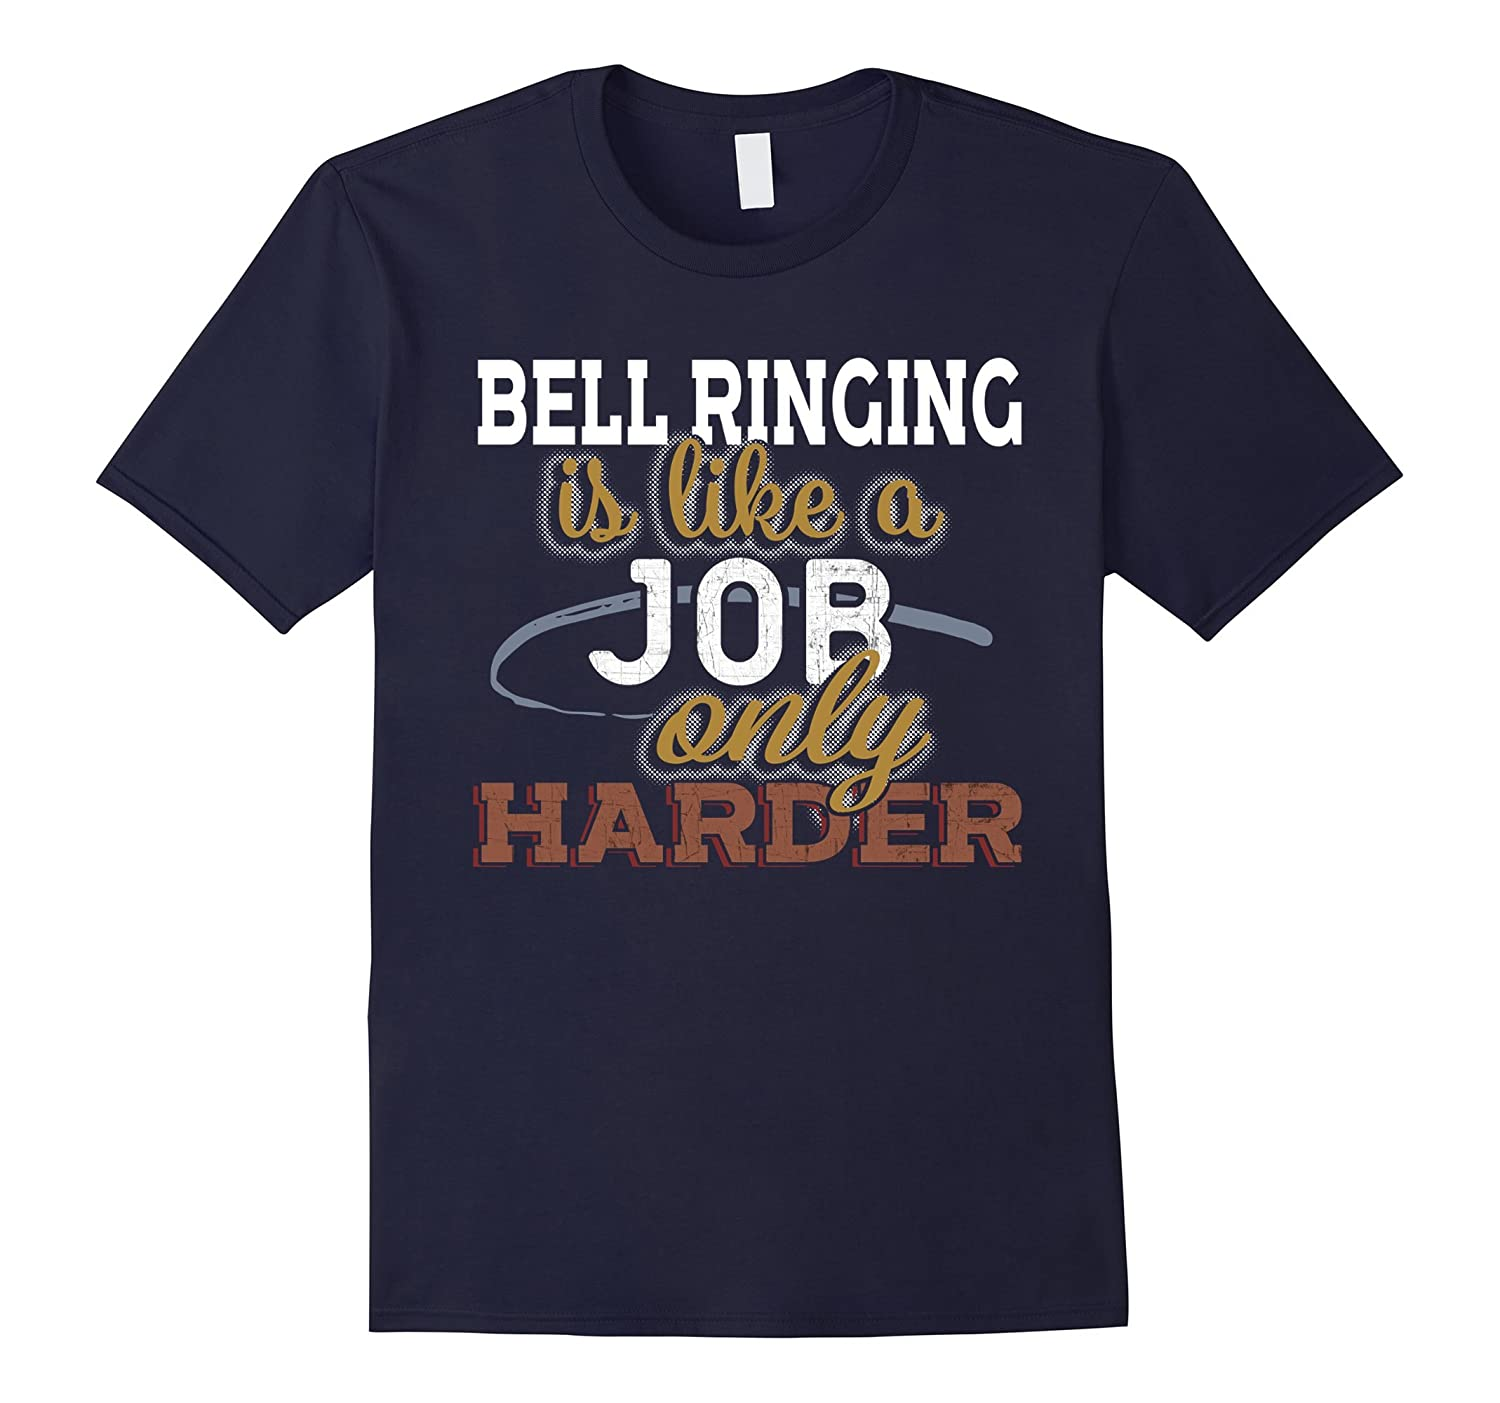 Bell Ringing is Just Like a Job Only Harder T Shirt-TJ